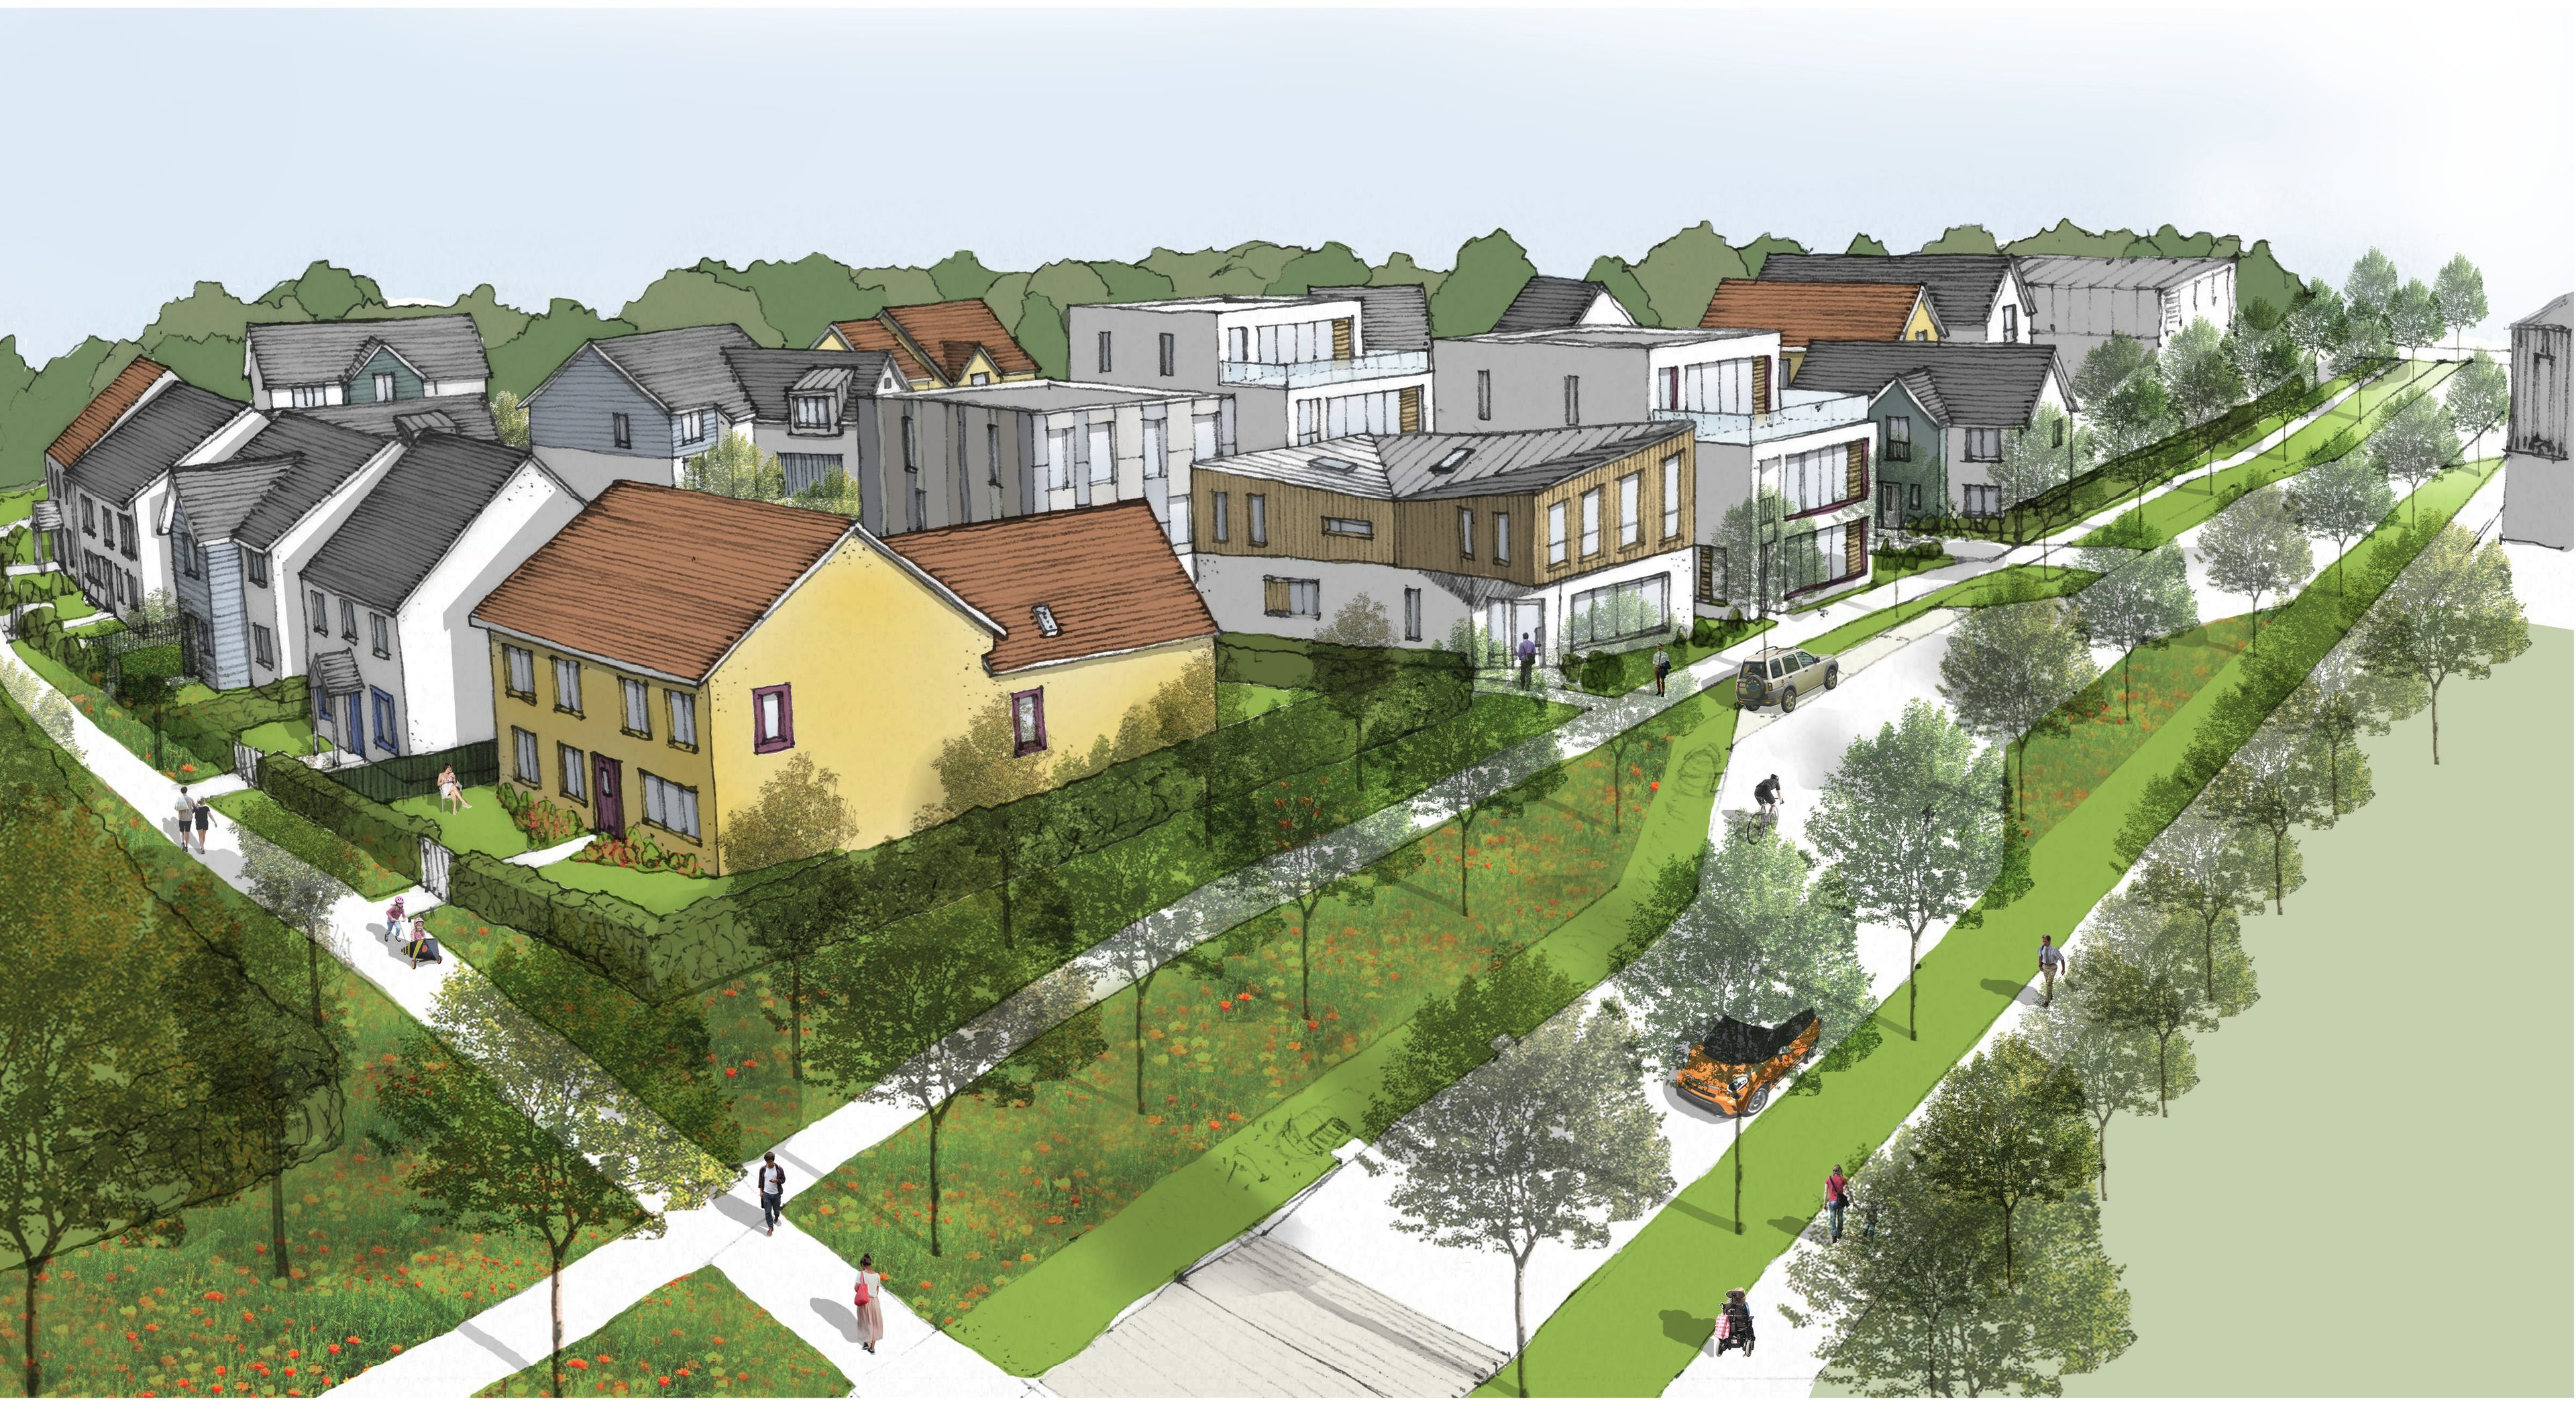 An impression of how the proposed development at Broomhall might look.